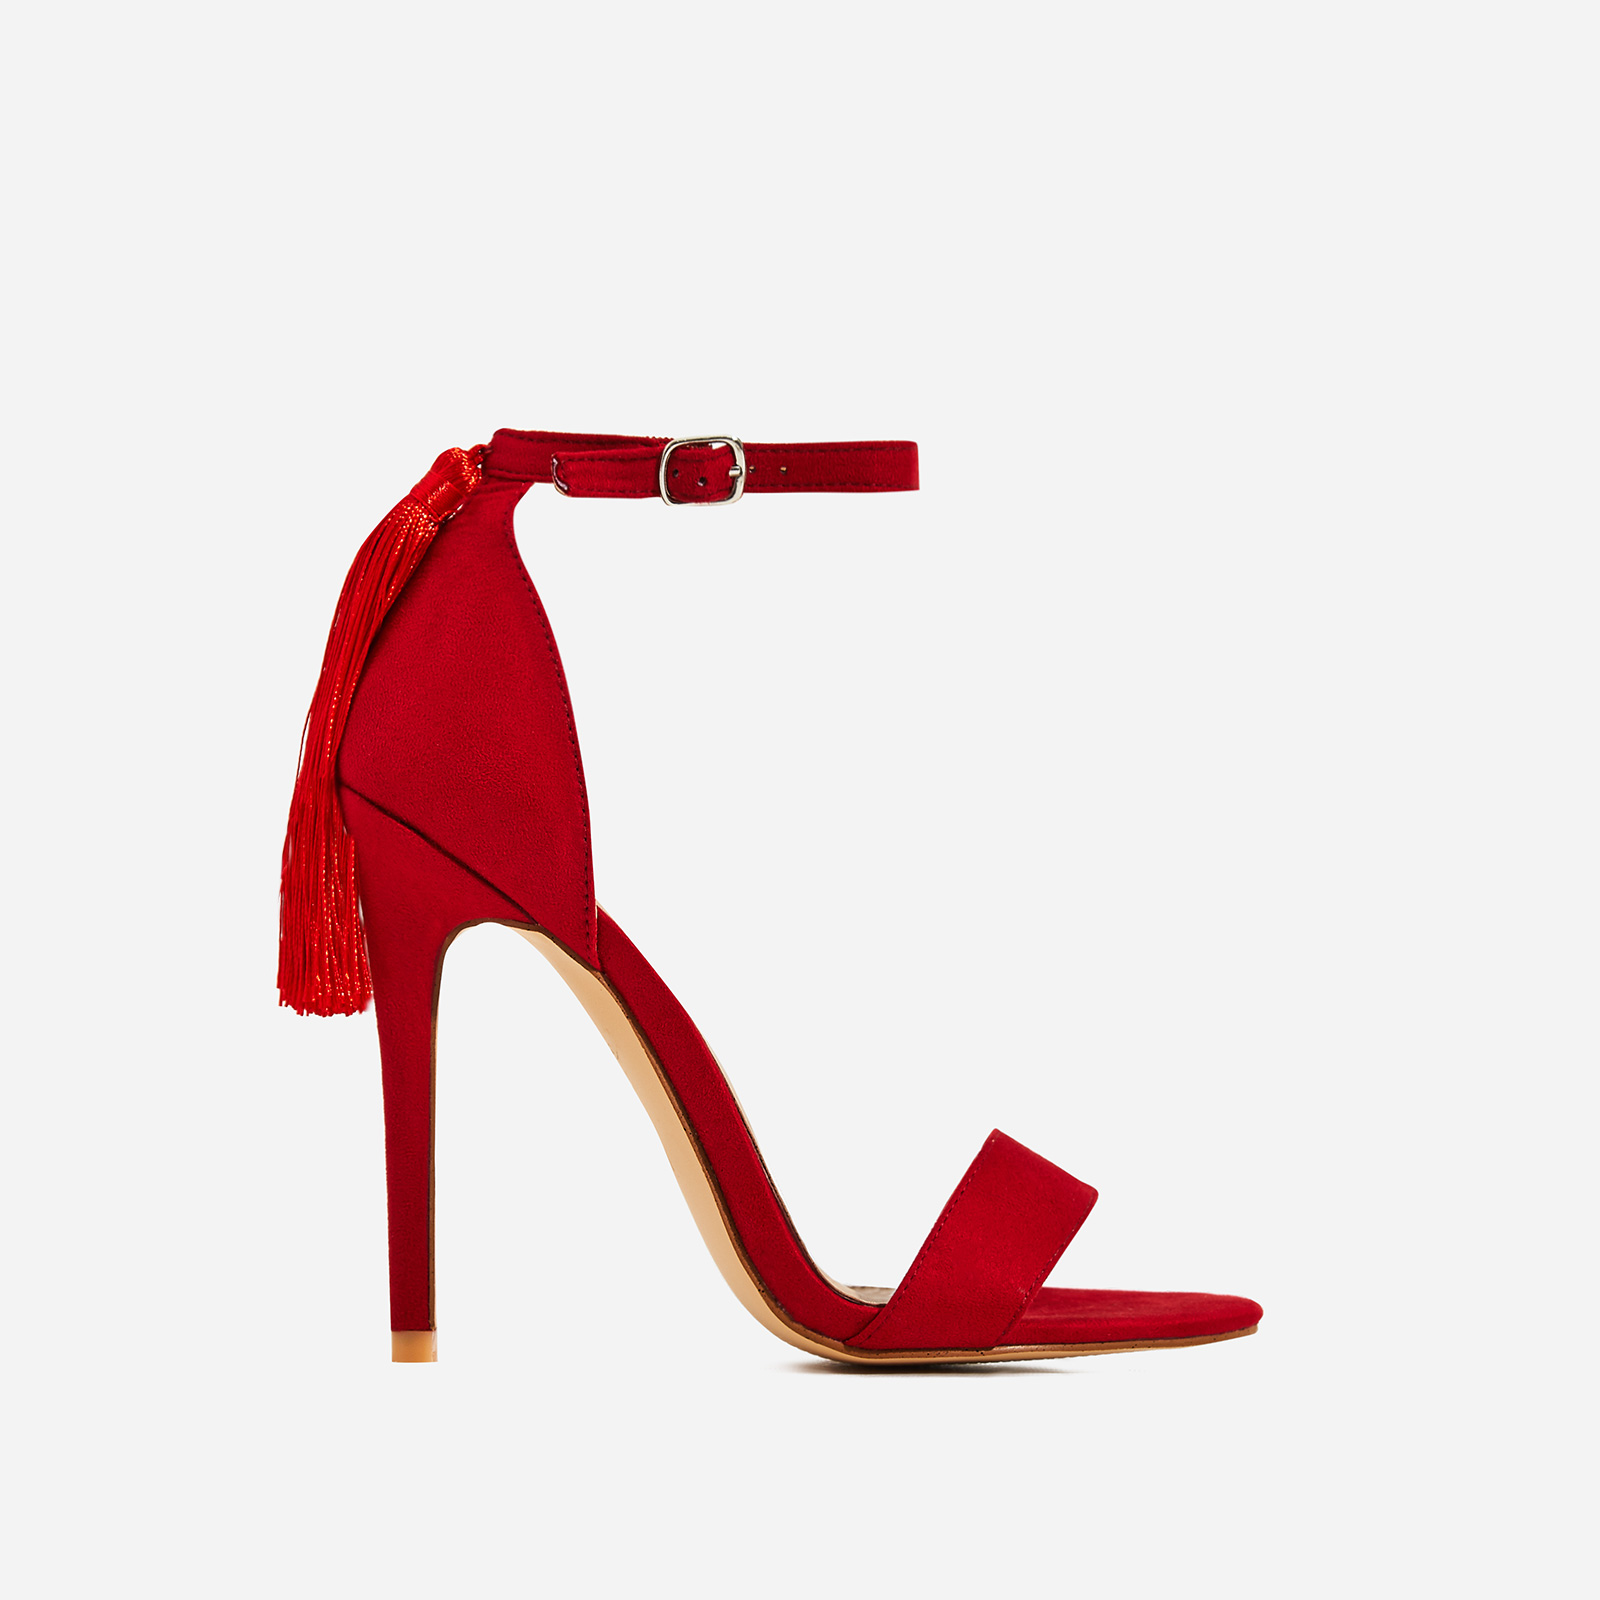 Tia Tassel Detail Barely There Heel In Red Faux Suede